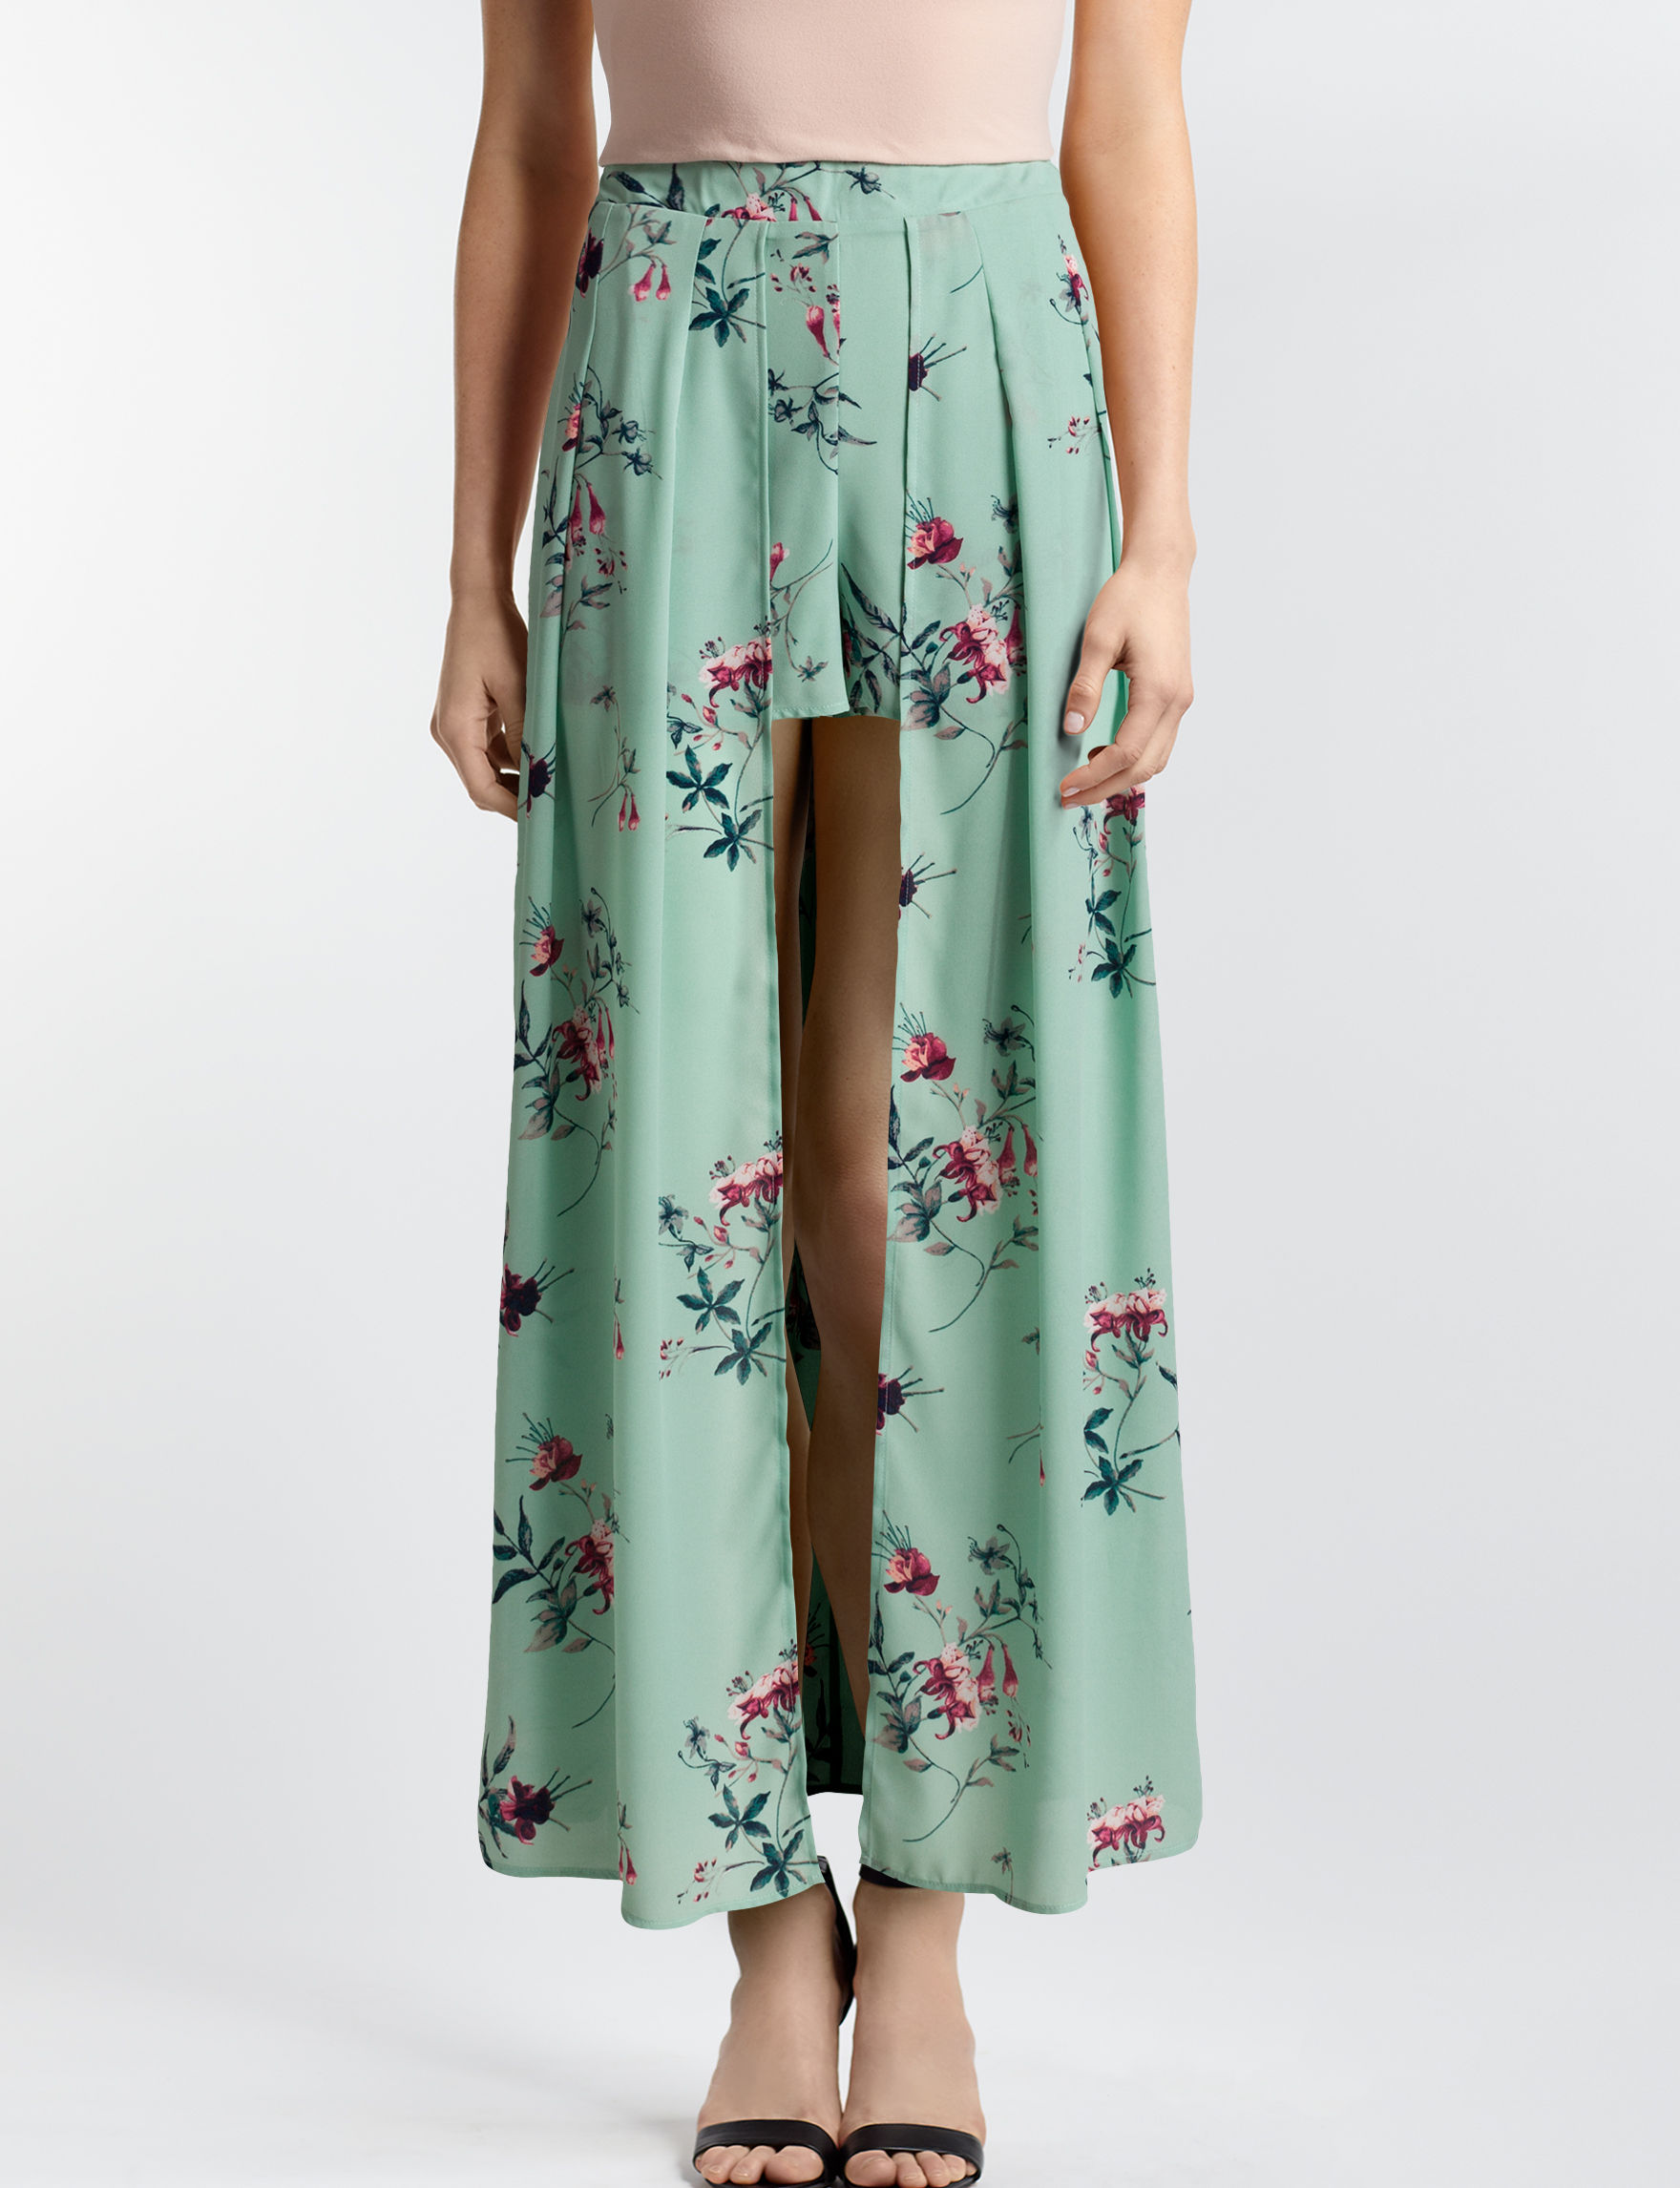 Justify Mint Floral